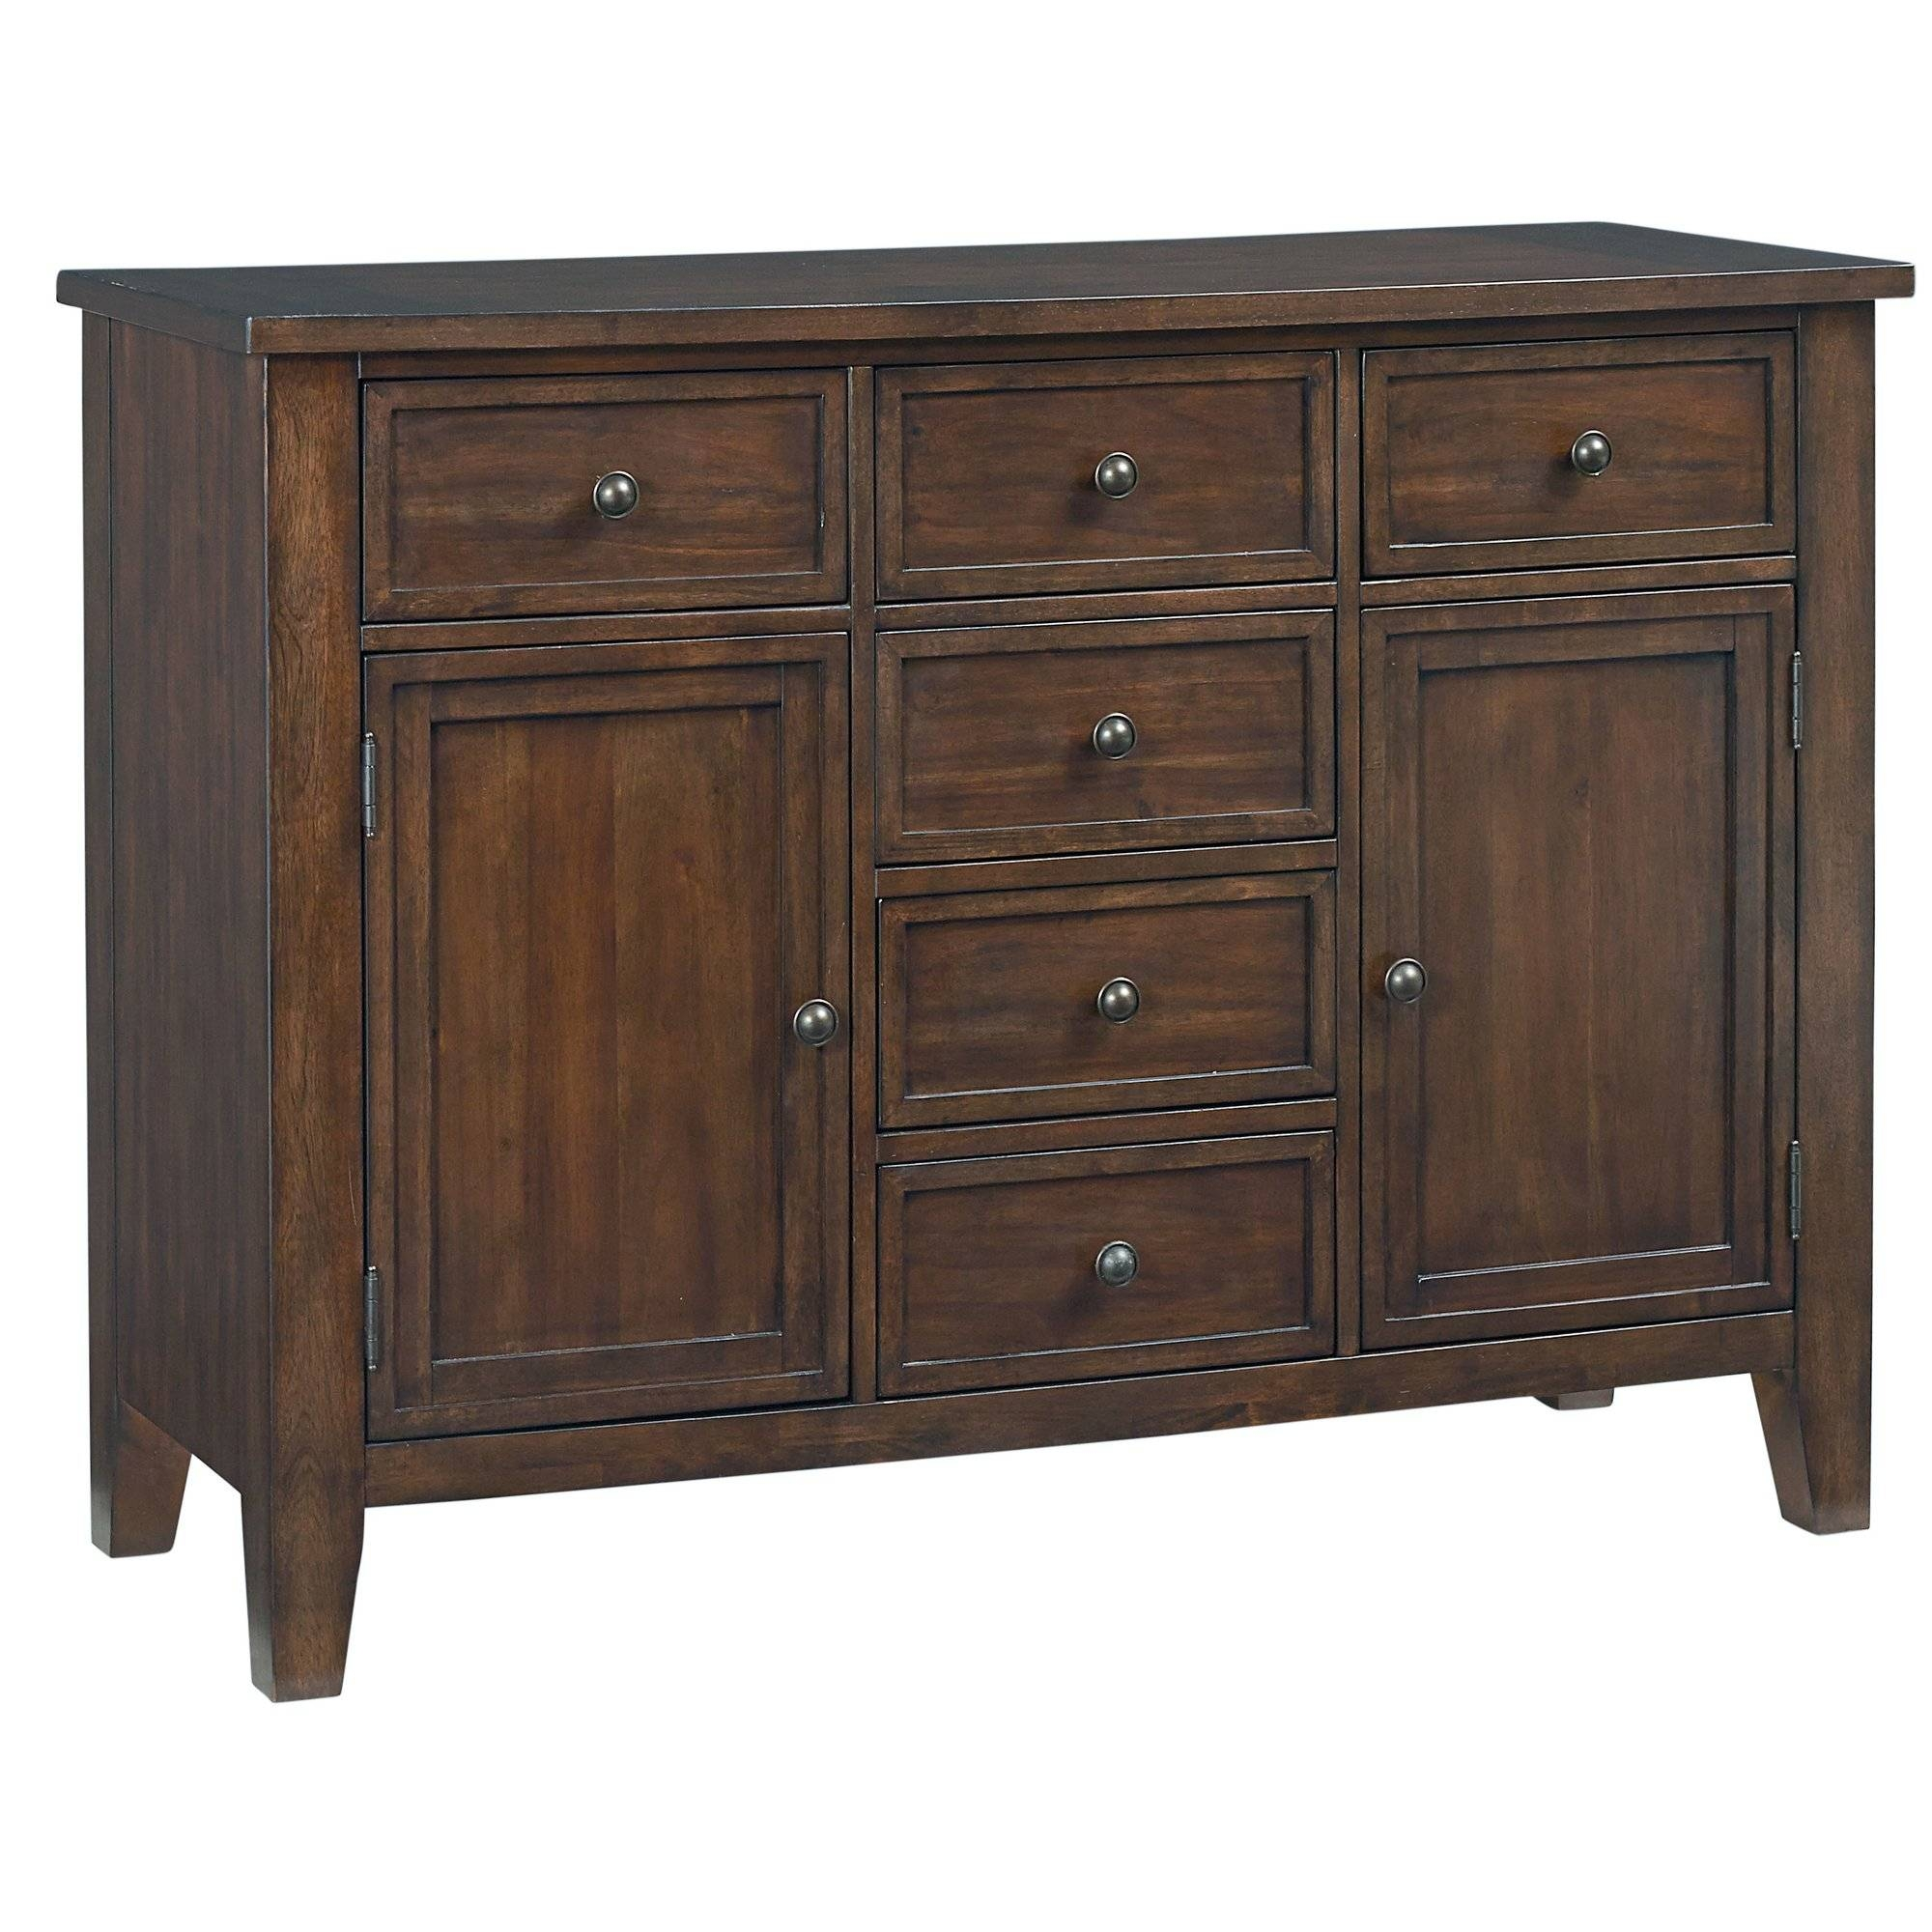 Furniture: Contemporary Version Of Distressed Sideboard Buffet Intended For Distressed Wood Sideboard (View 20 of 20)